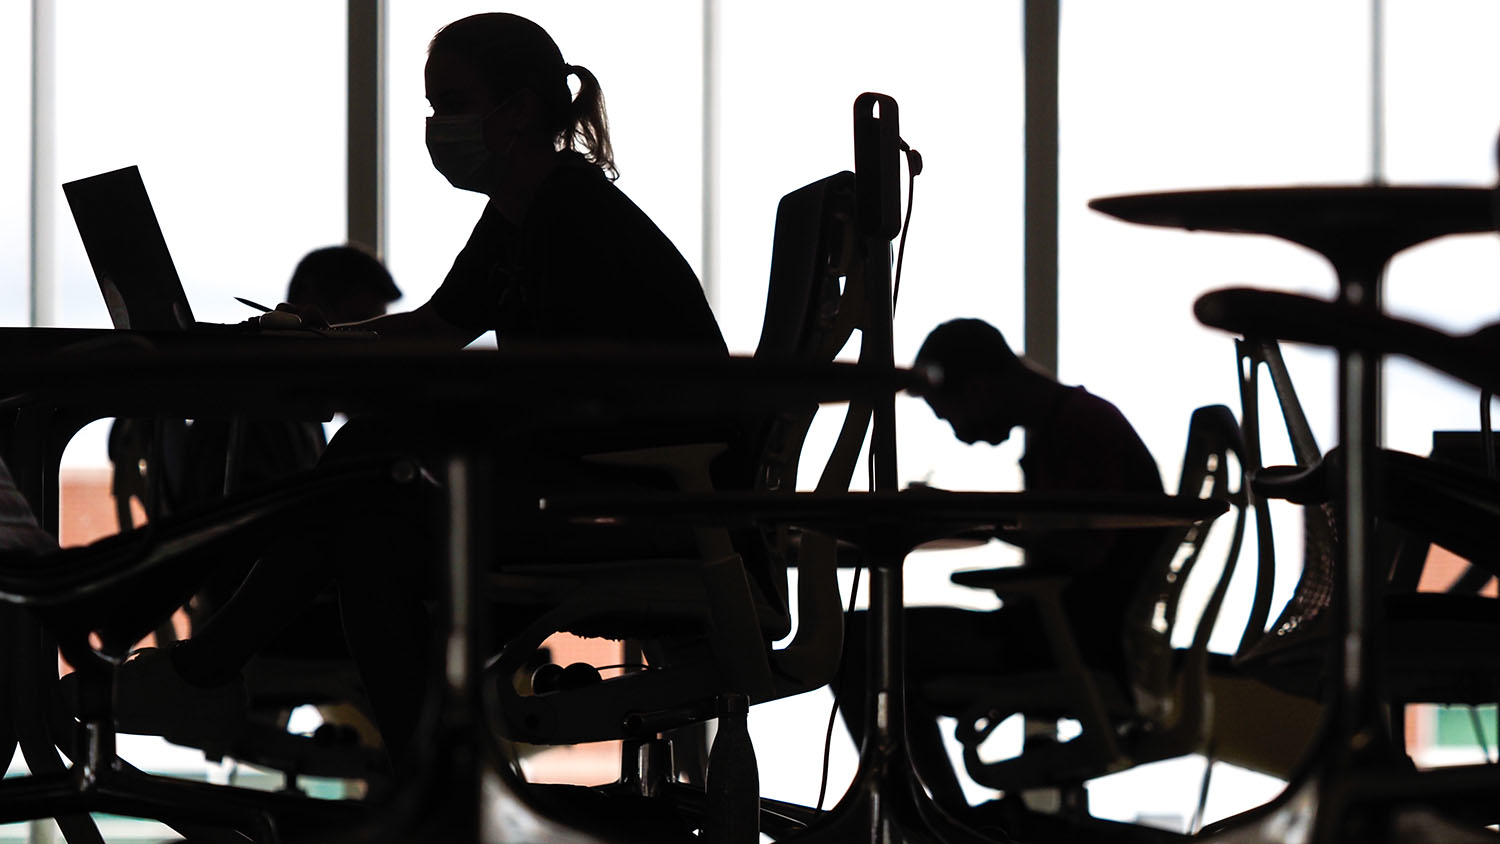 masked students in silhouette